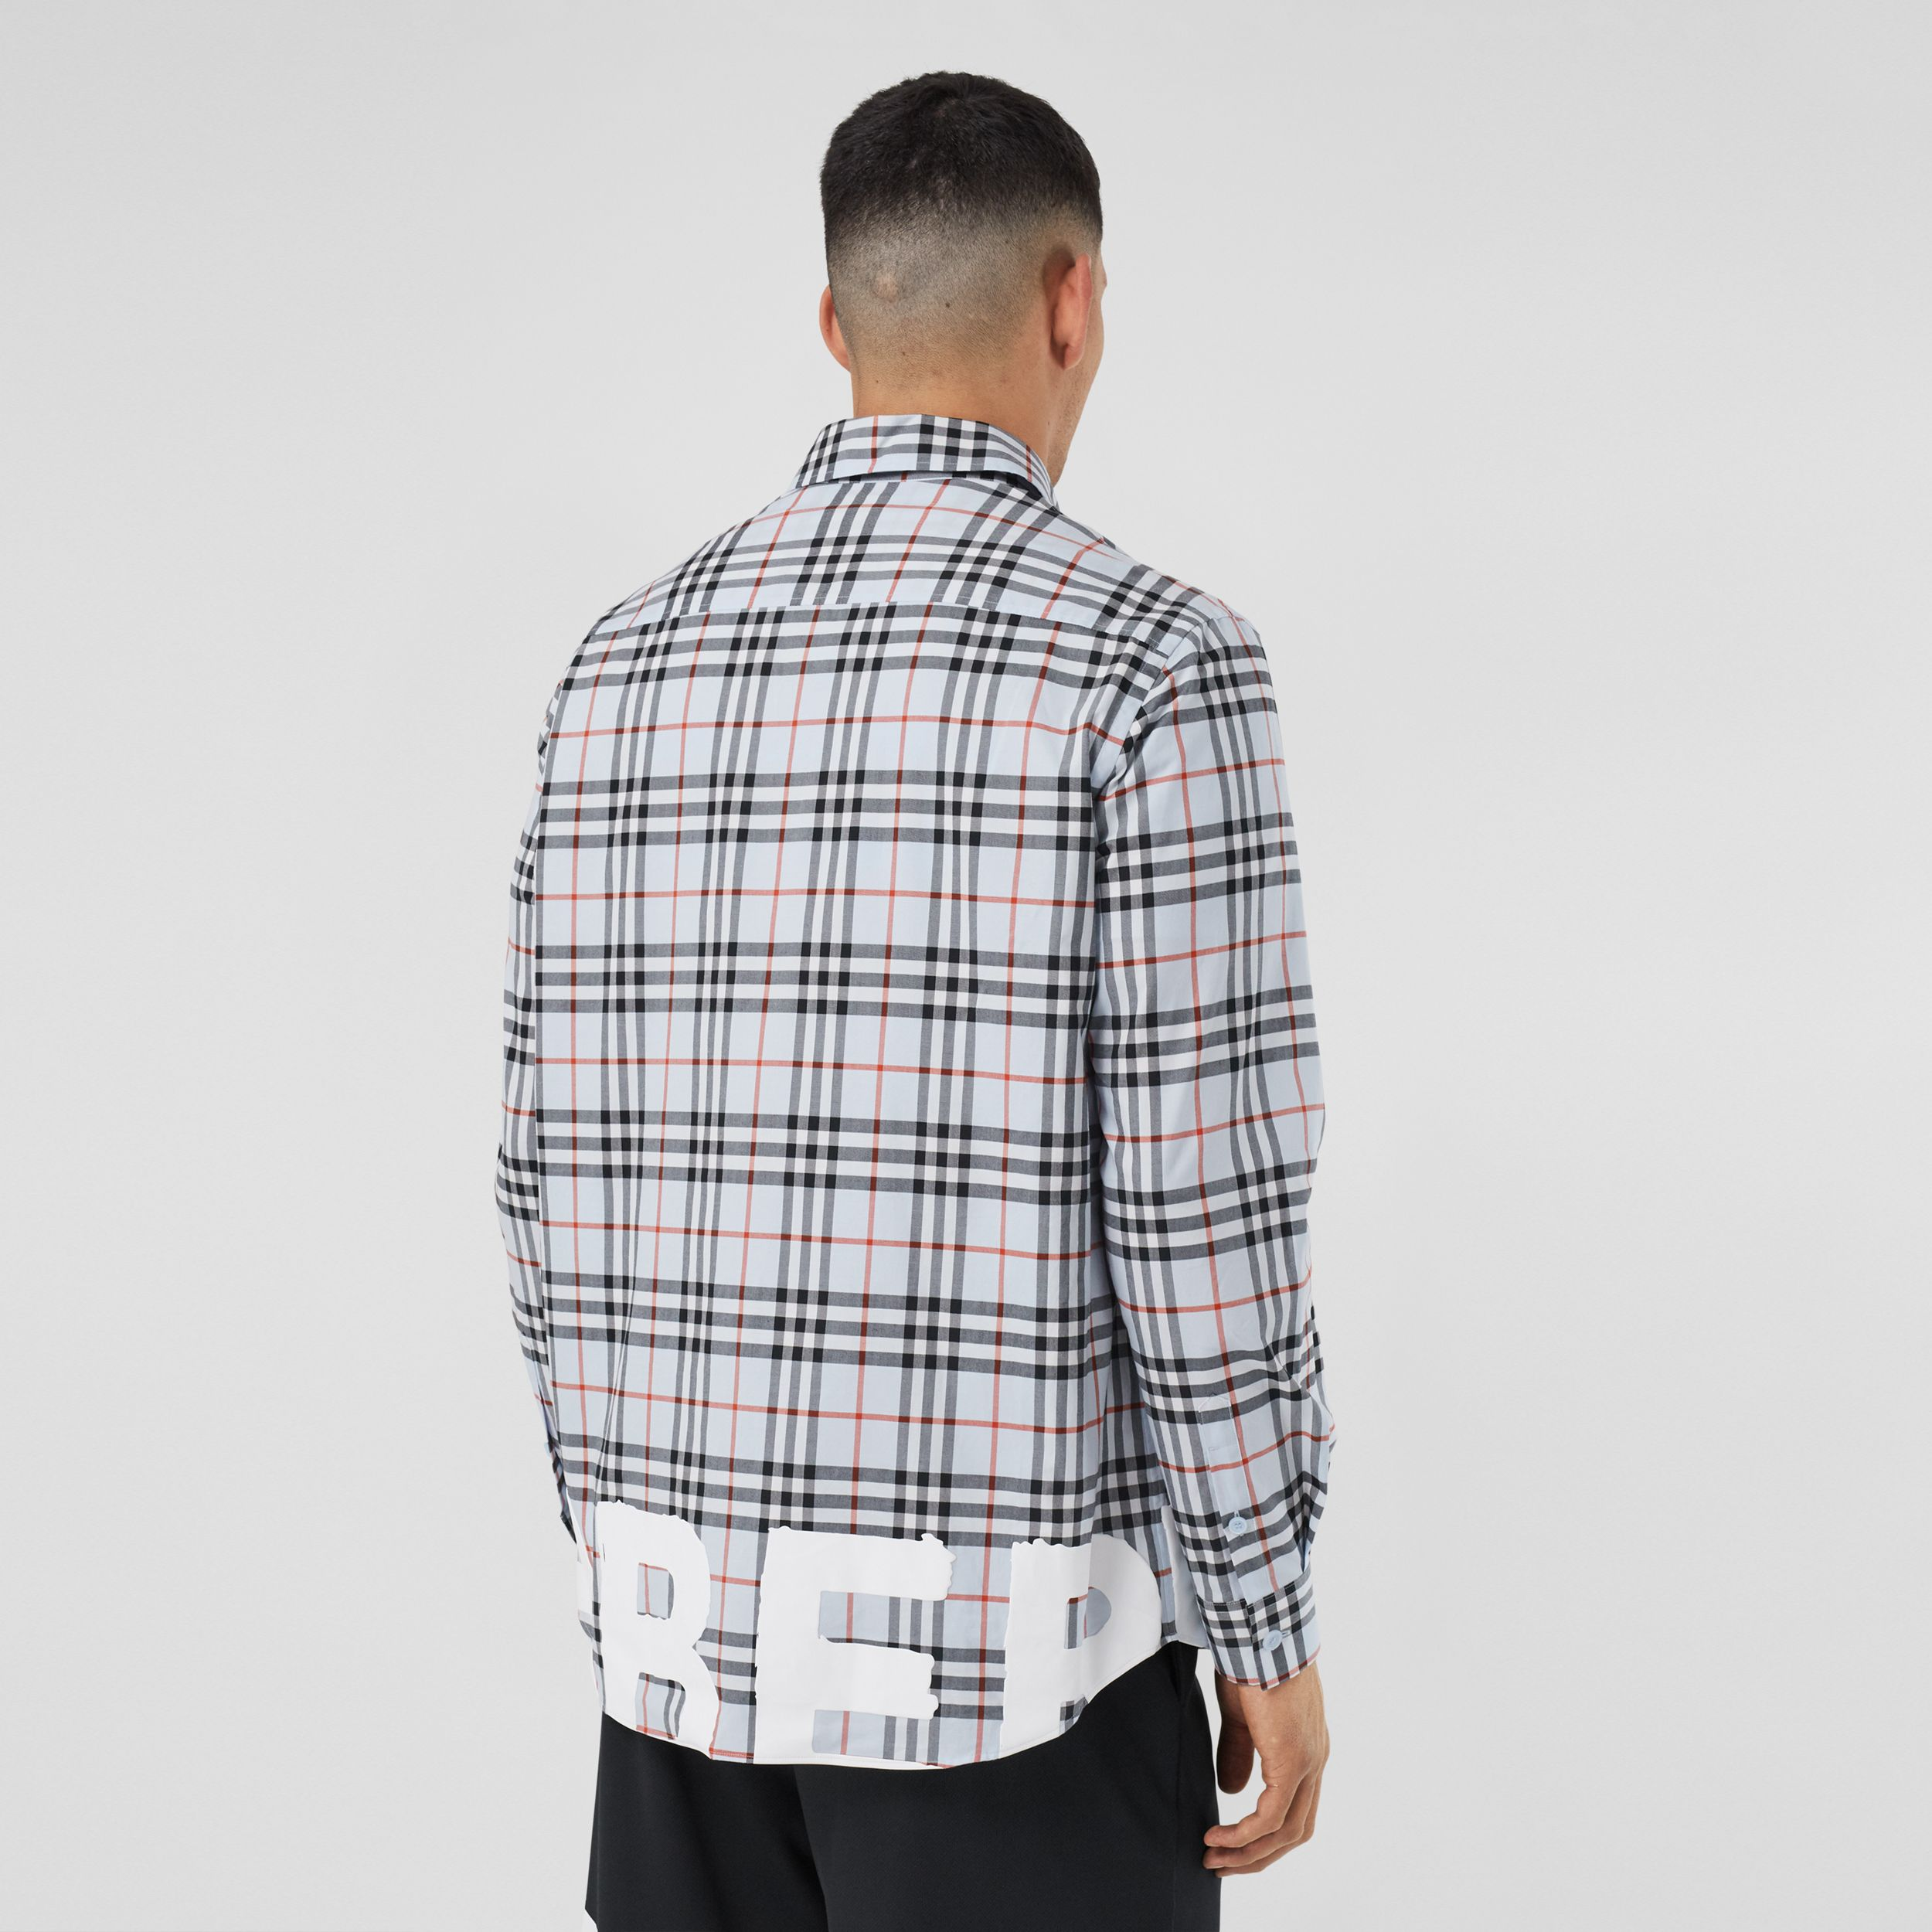 Logo Print Vintage Check Cotton Oversized Shirt – Online Exclusive in Pale Blue - Men | Burberry United Kingdom - 3